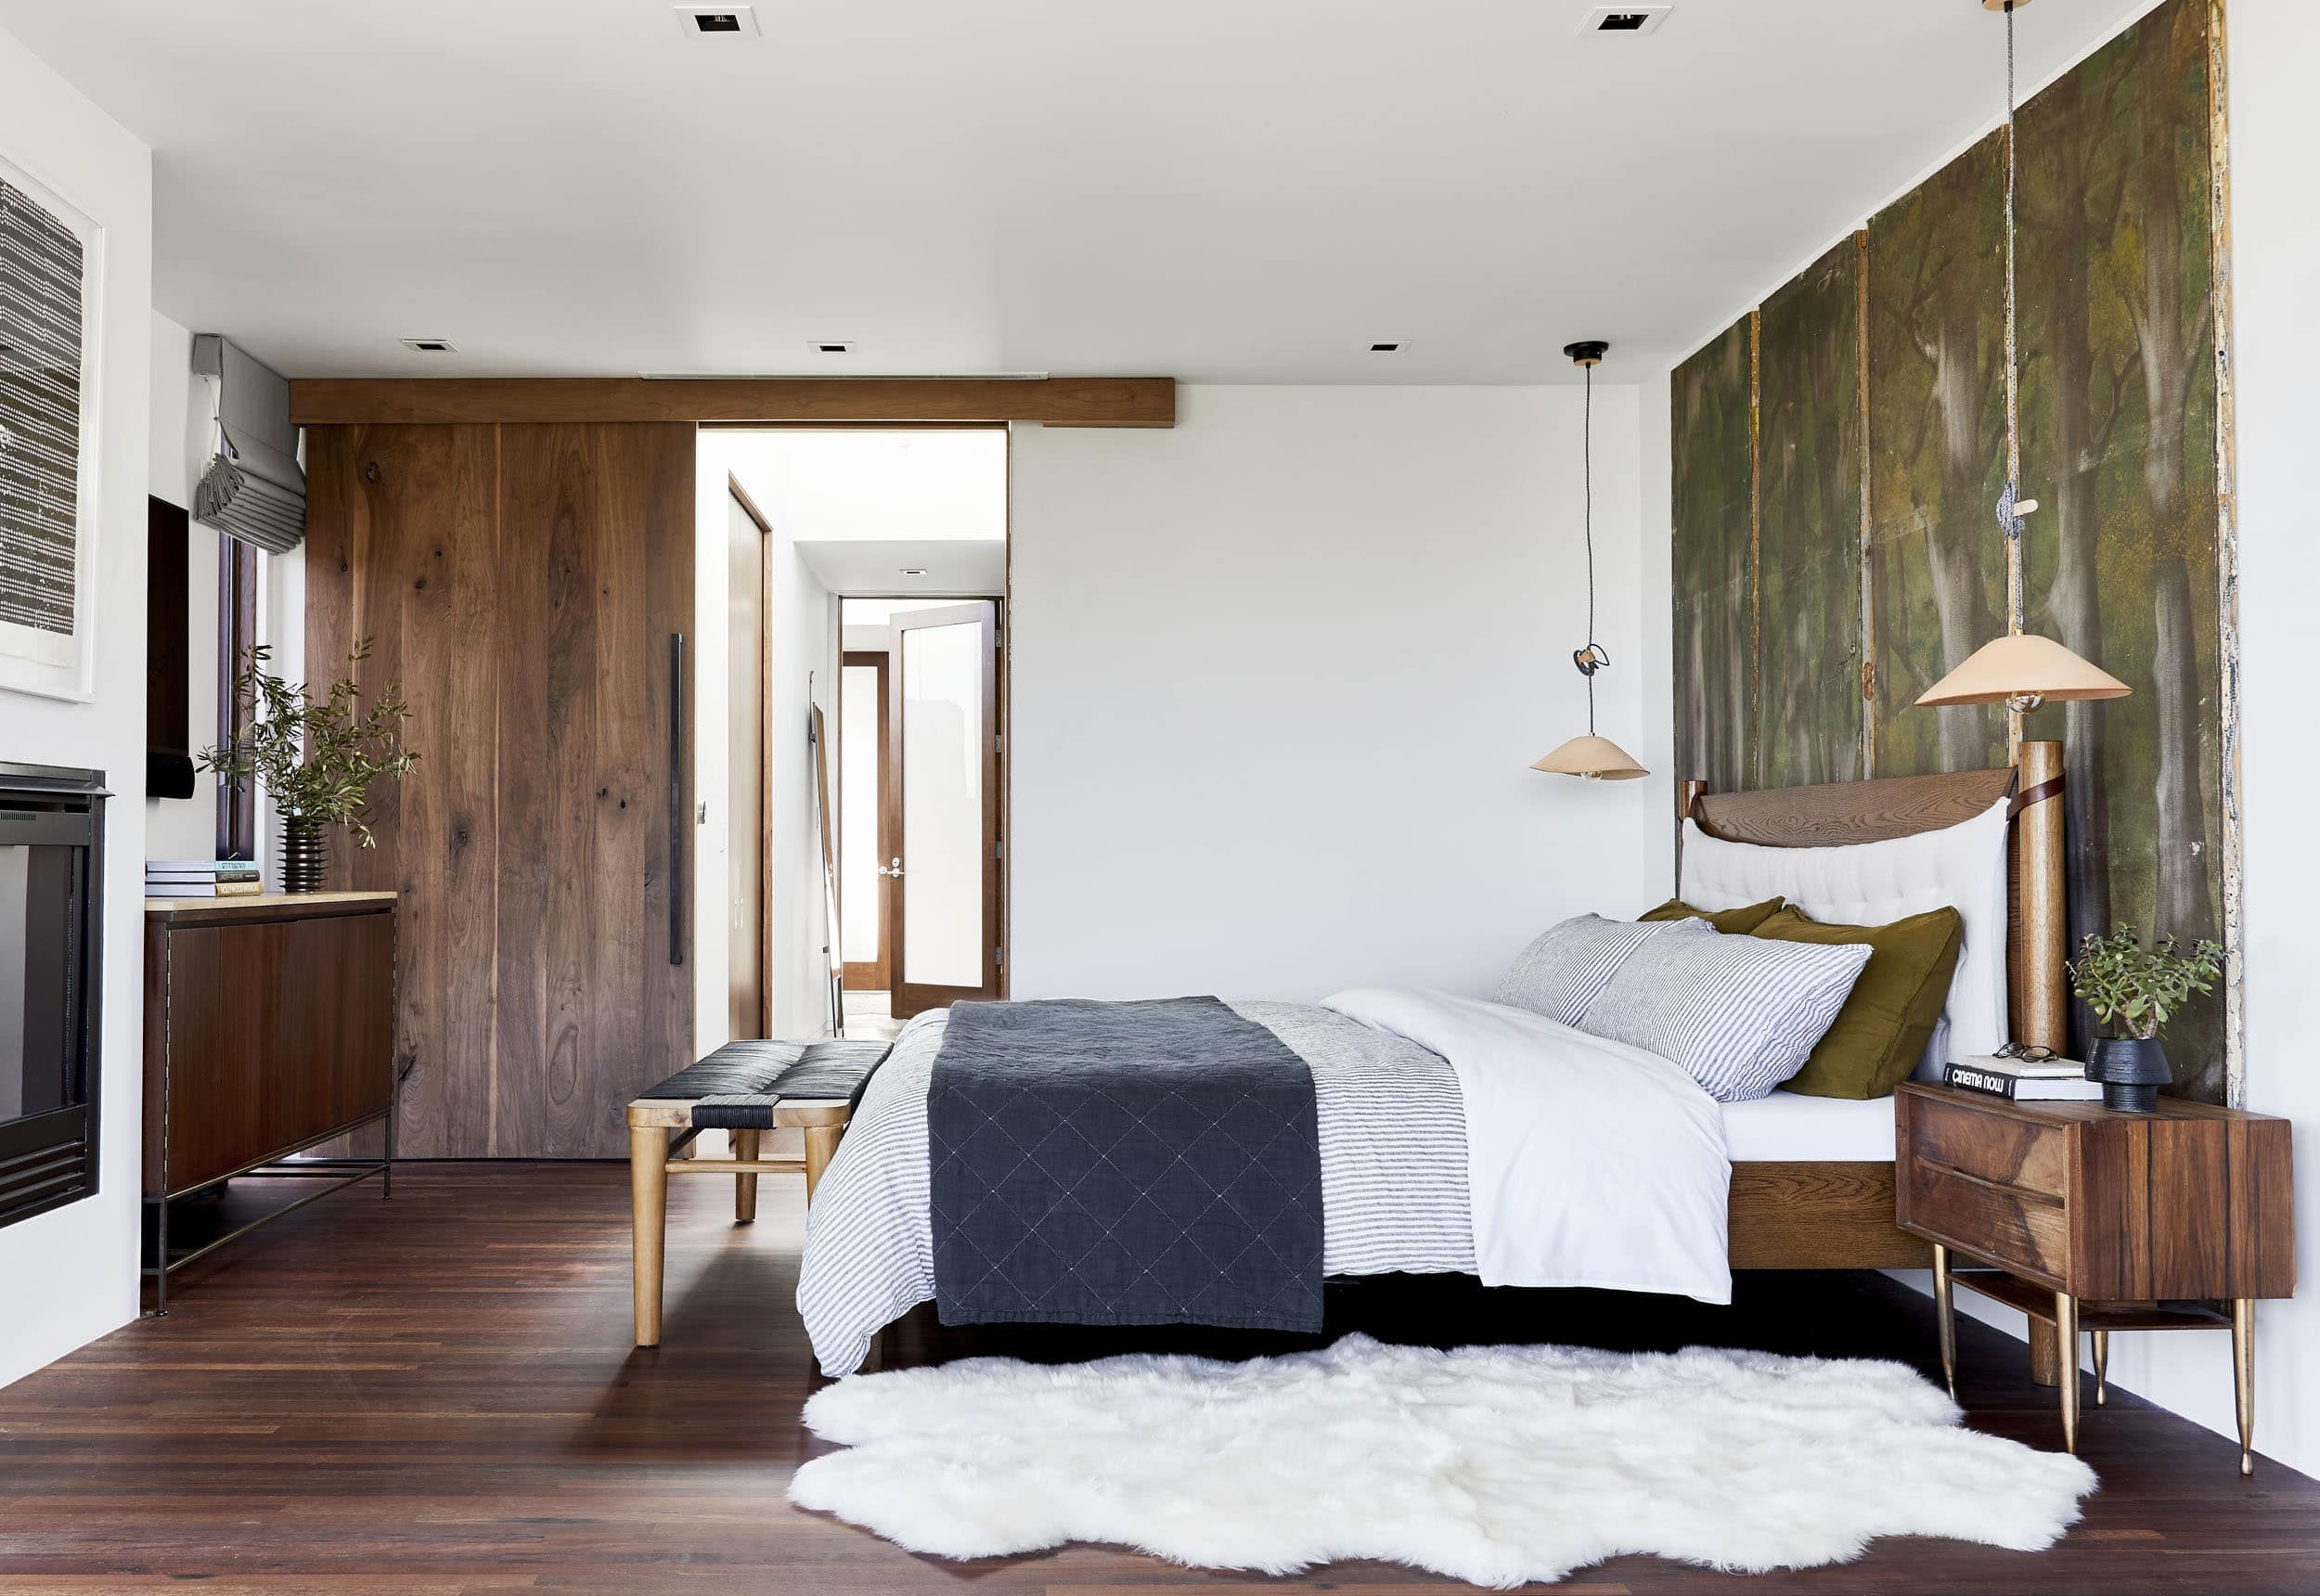 6 Steps to Get a High-Impact & Organic Bedroom (+ Brooklinen